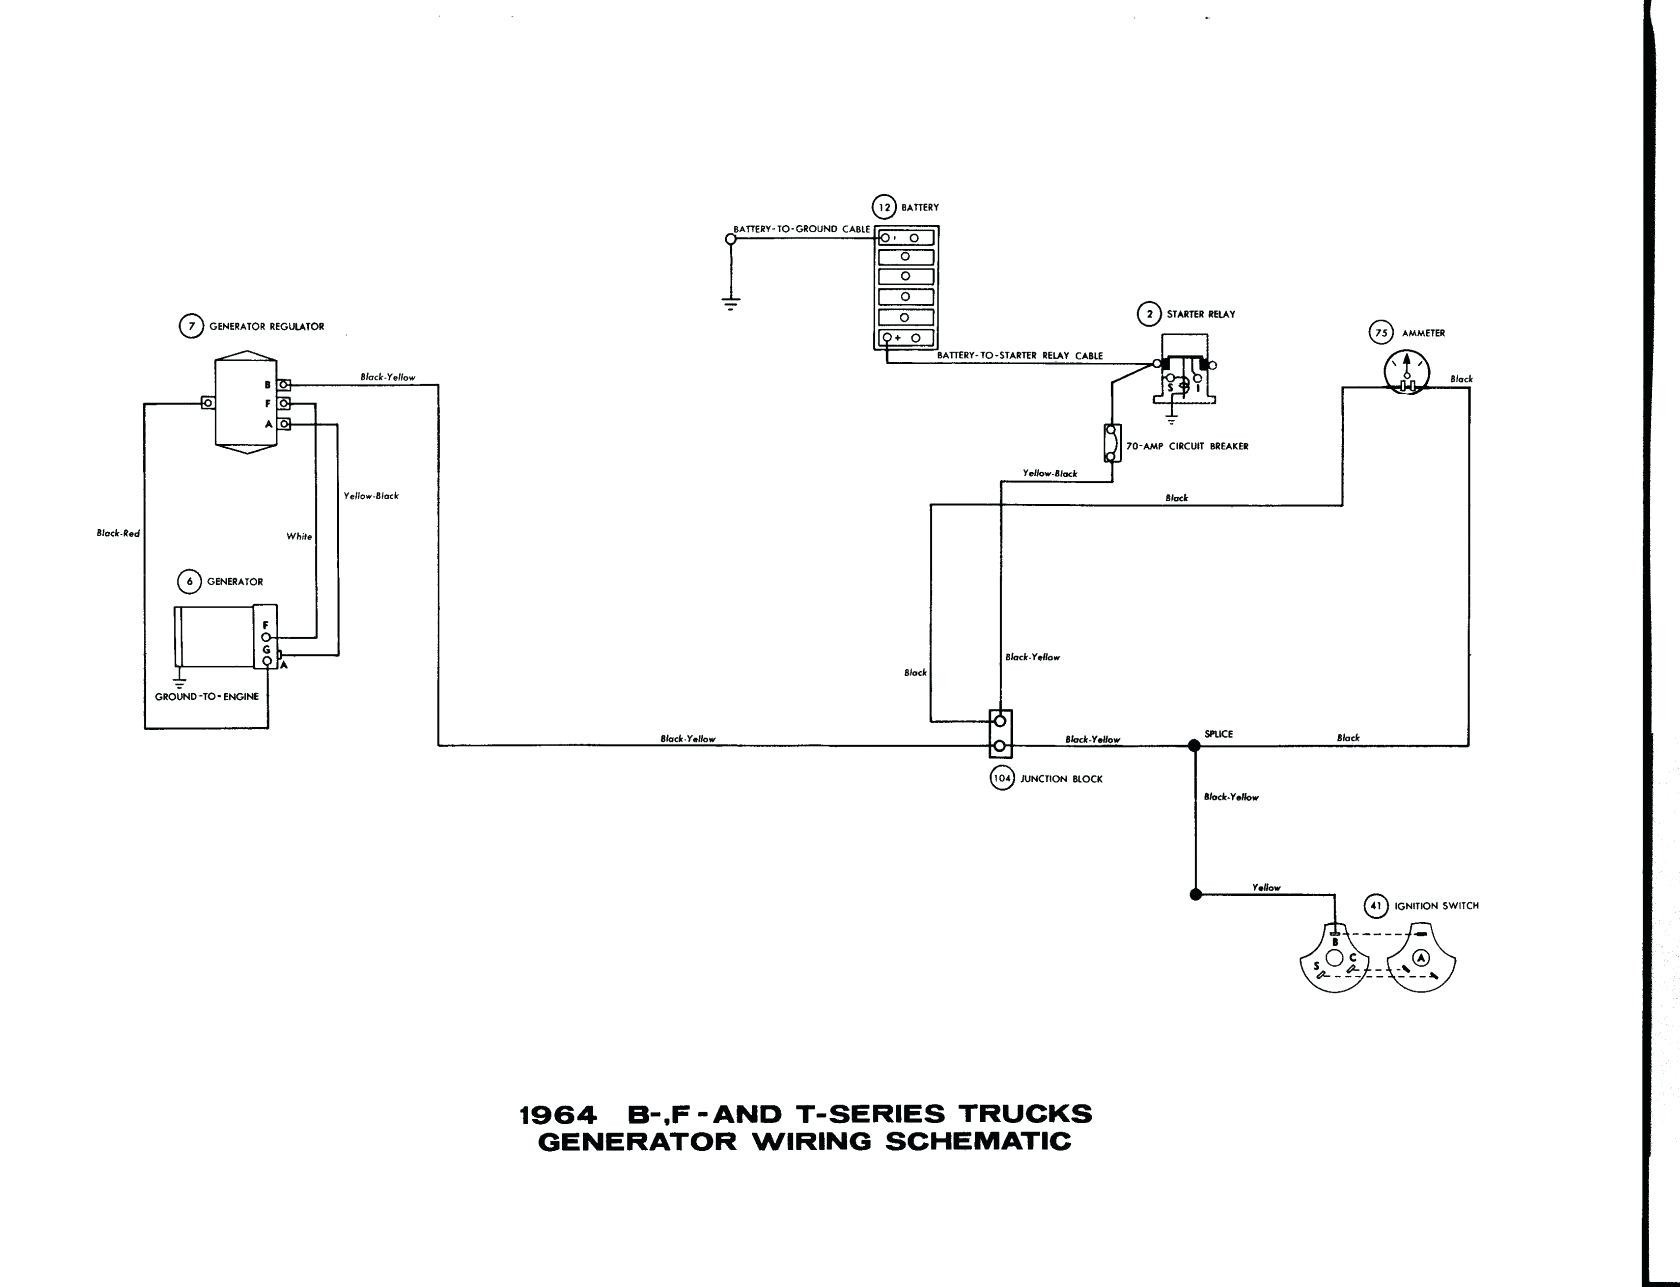 hight resolution of ac delco 4 wire alternator wiring diagram download wiring diagram for ac delco alternator new